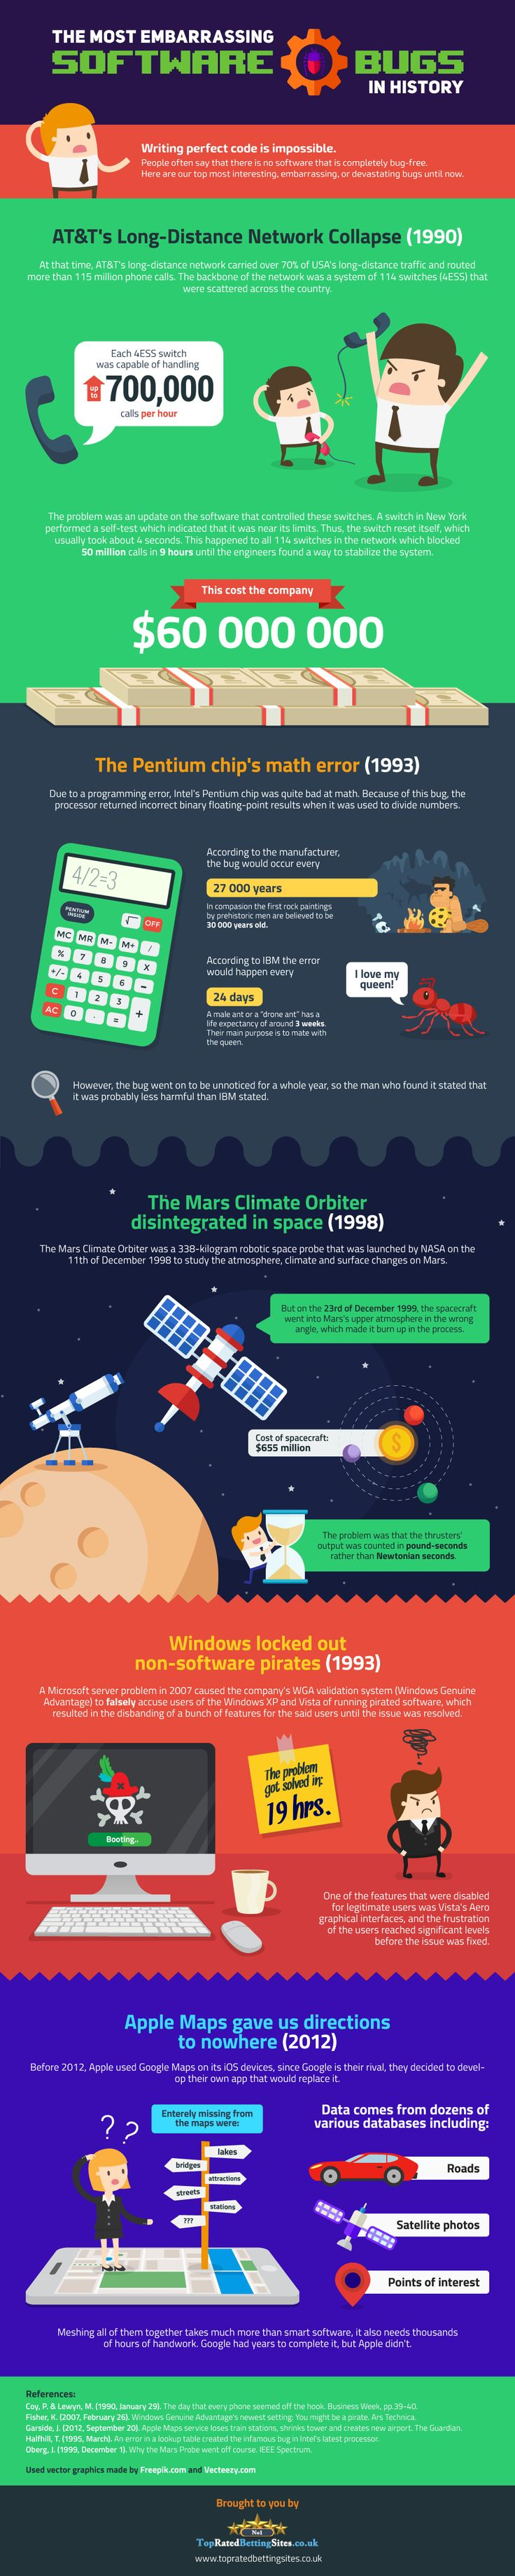 The Most Embarrassing Software Bugs in History #Infographic #Bugs #History #IT